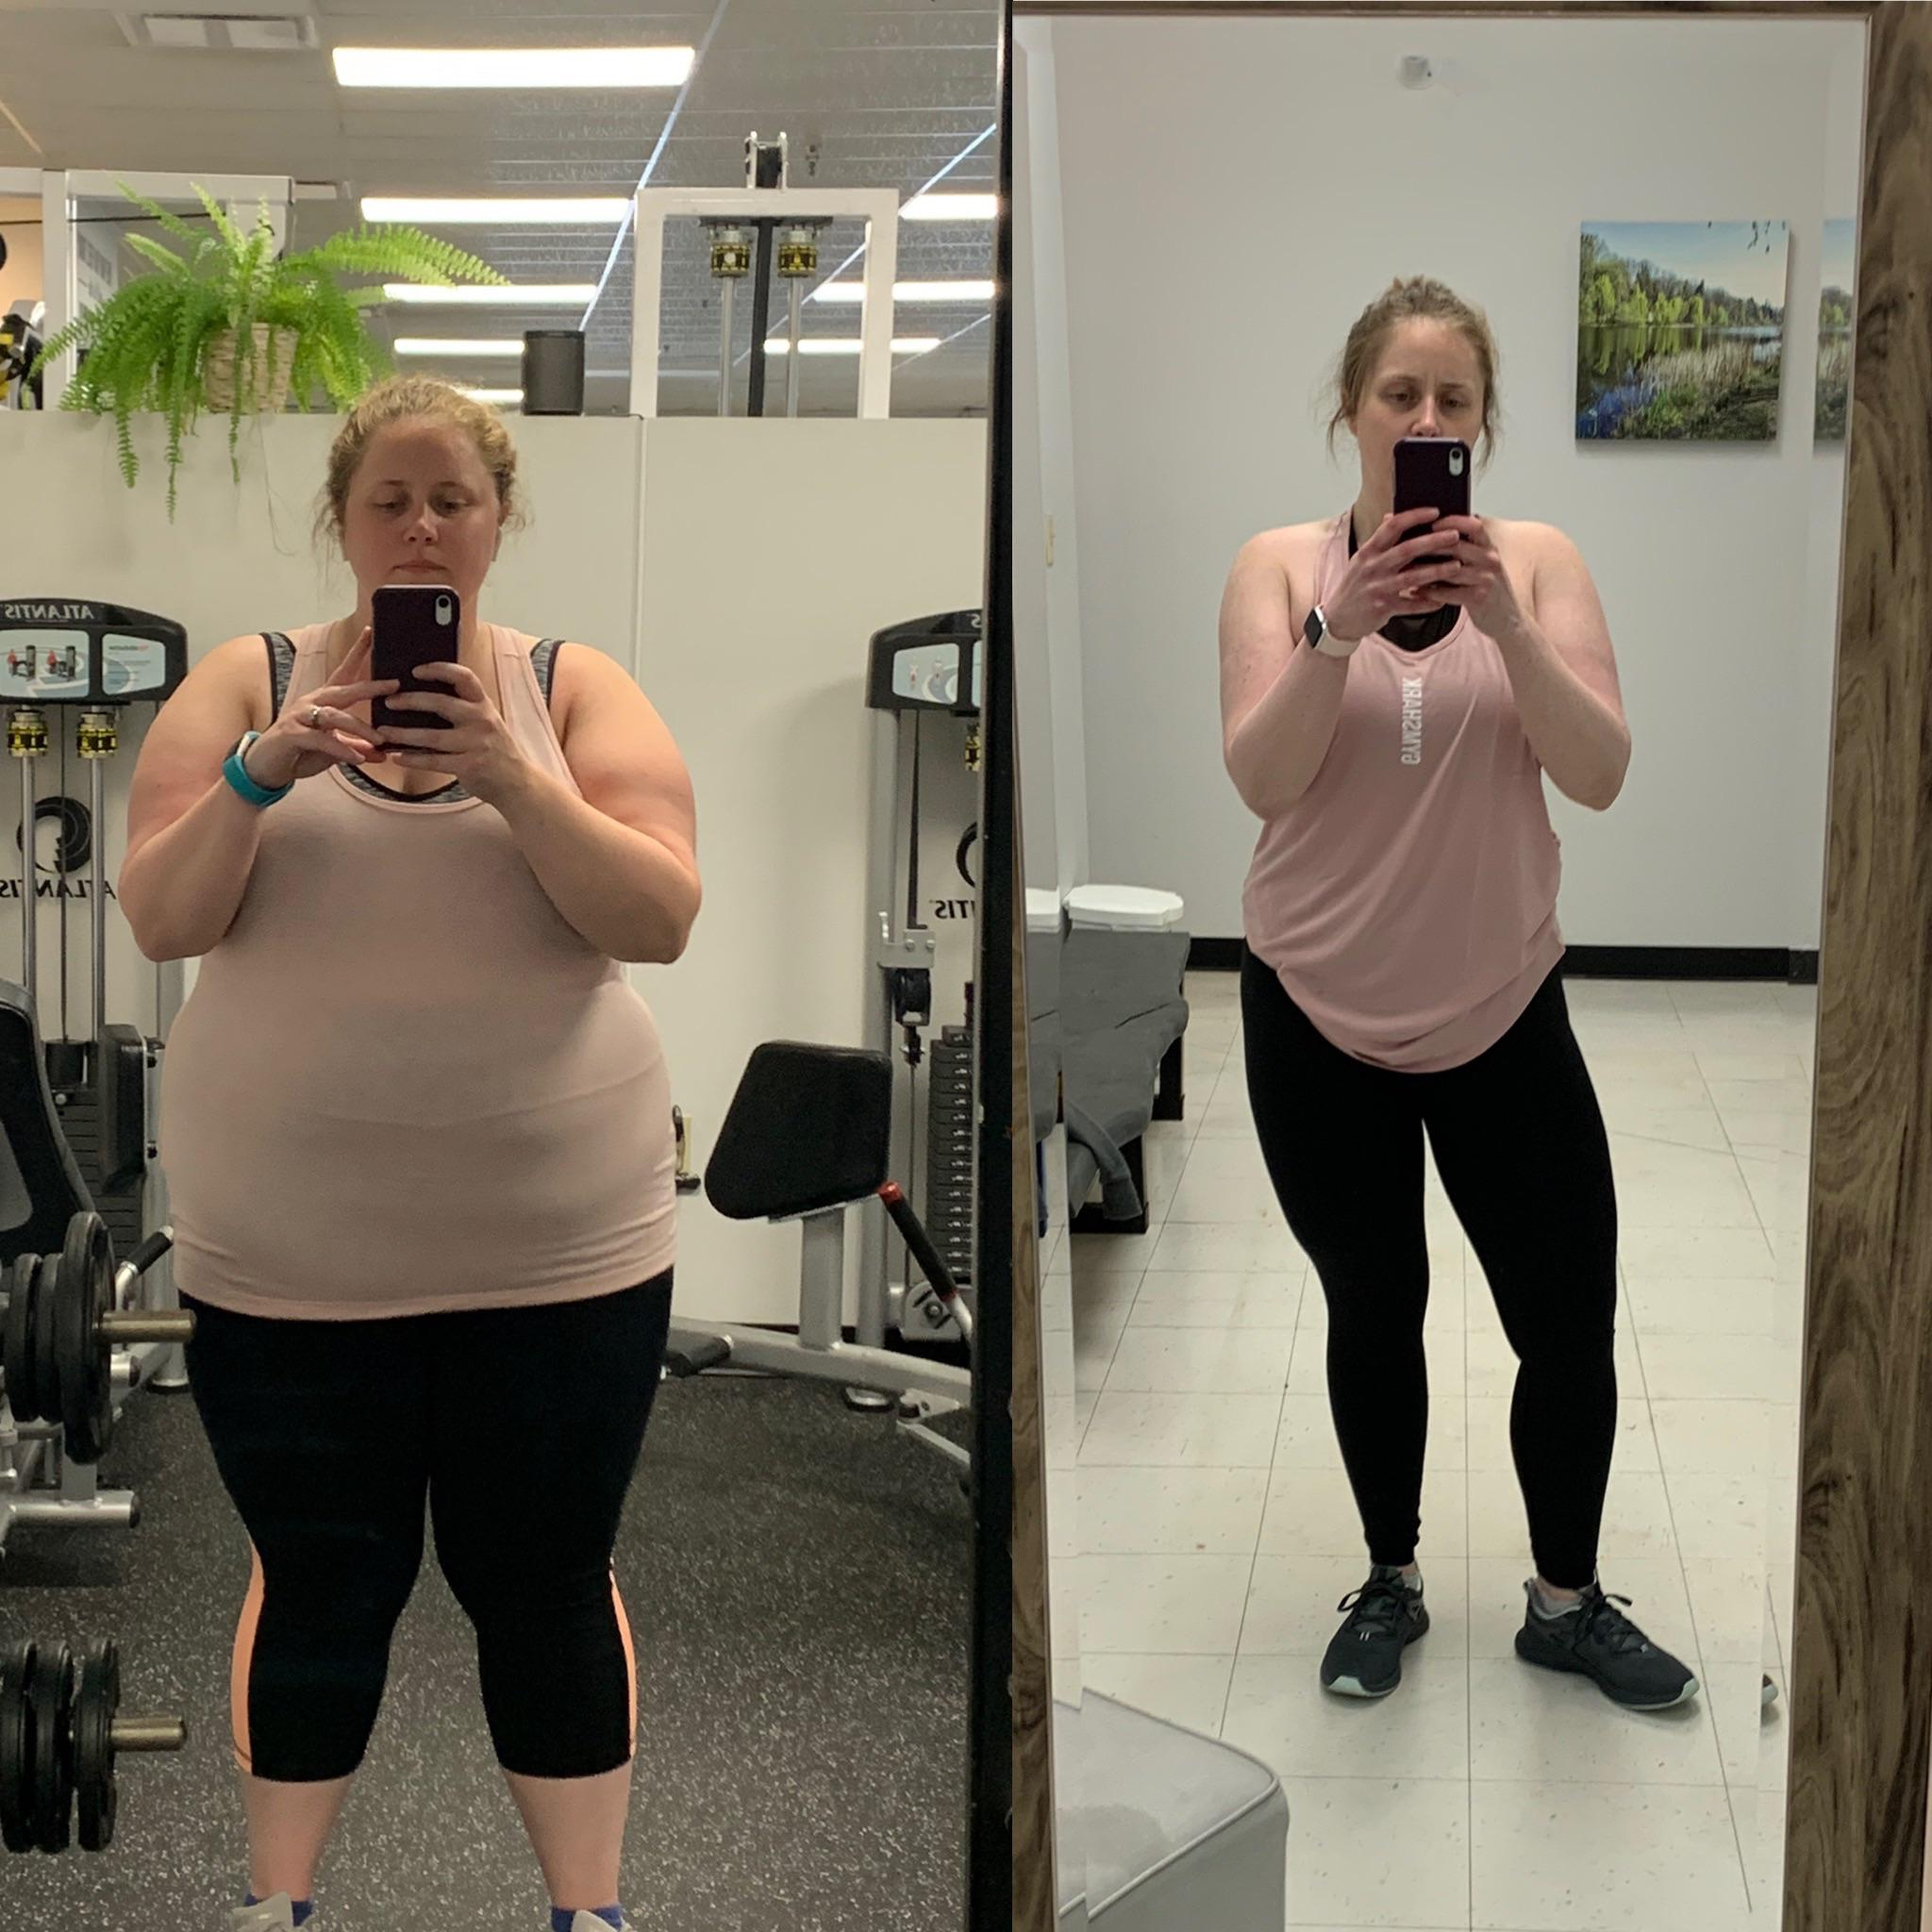 5 feet 7 Female Before and After 118 lbs Fat Loss 298 lbs to 180 lbs